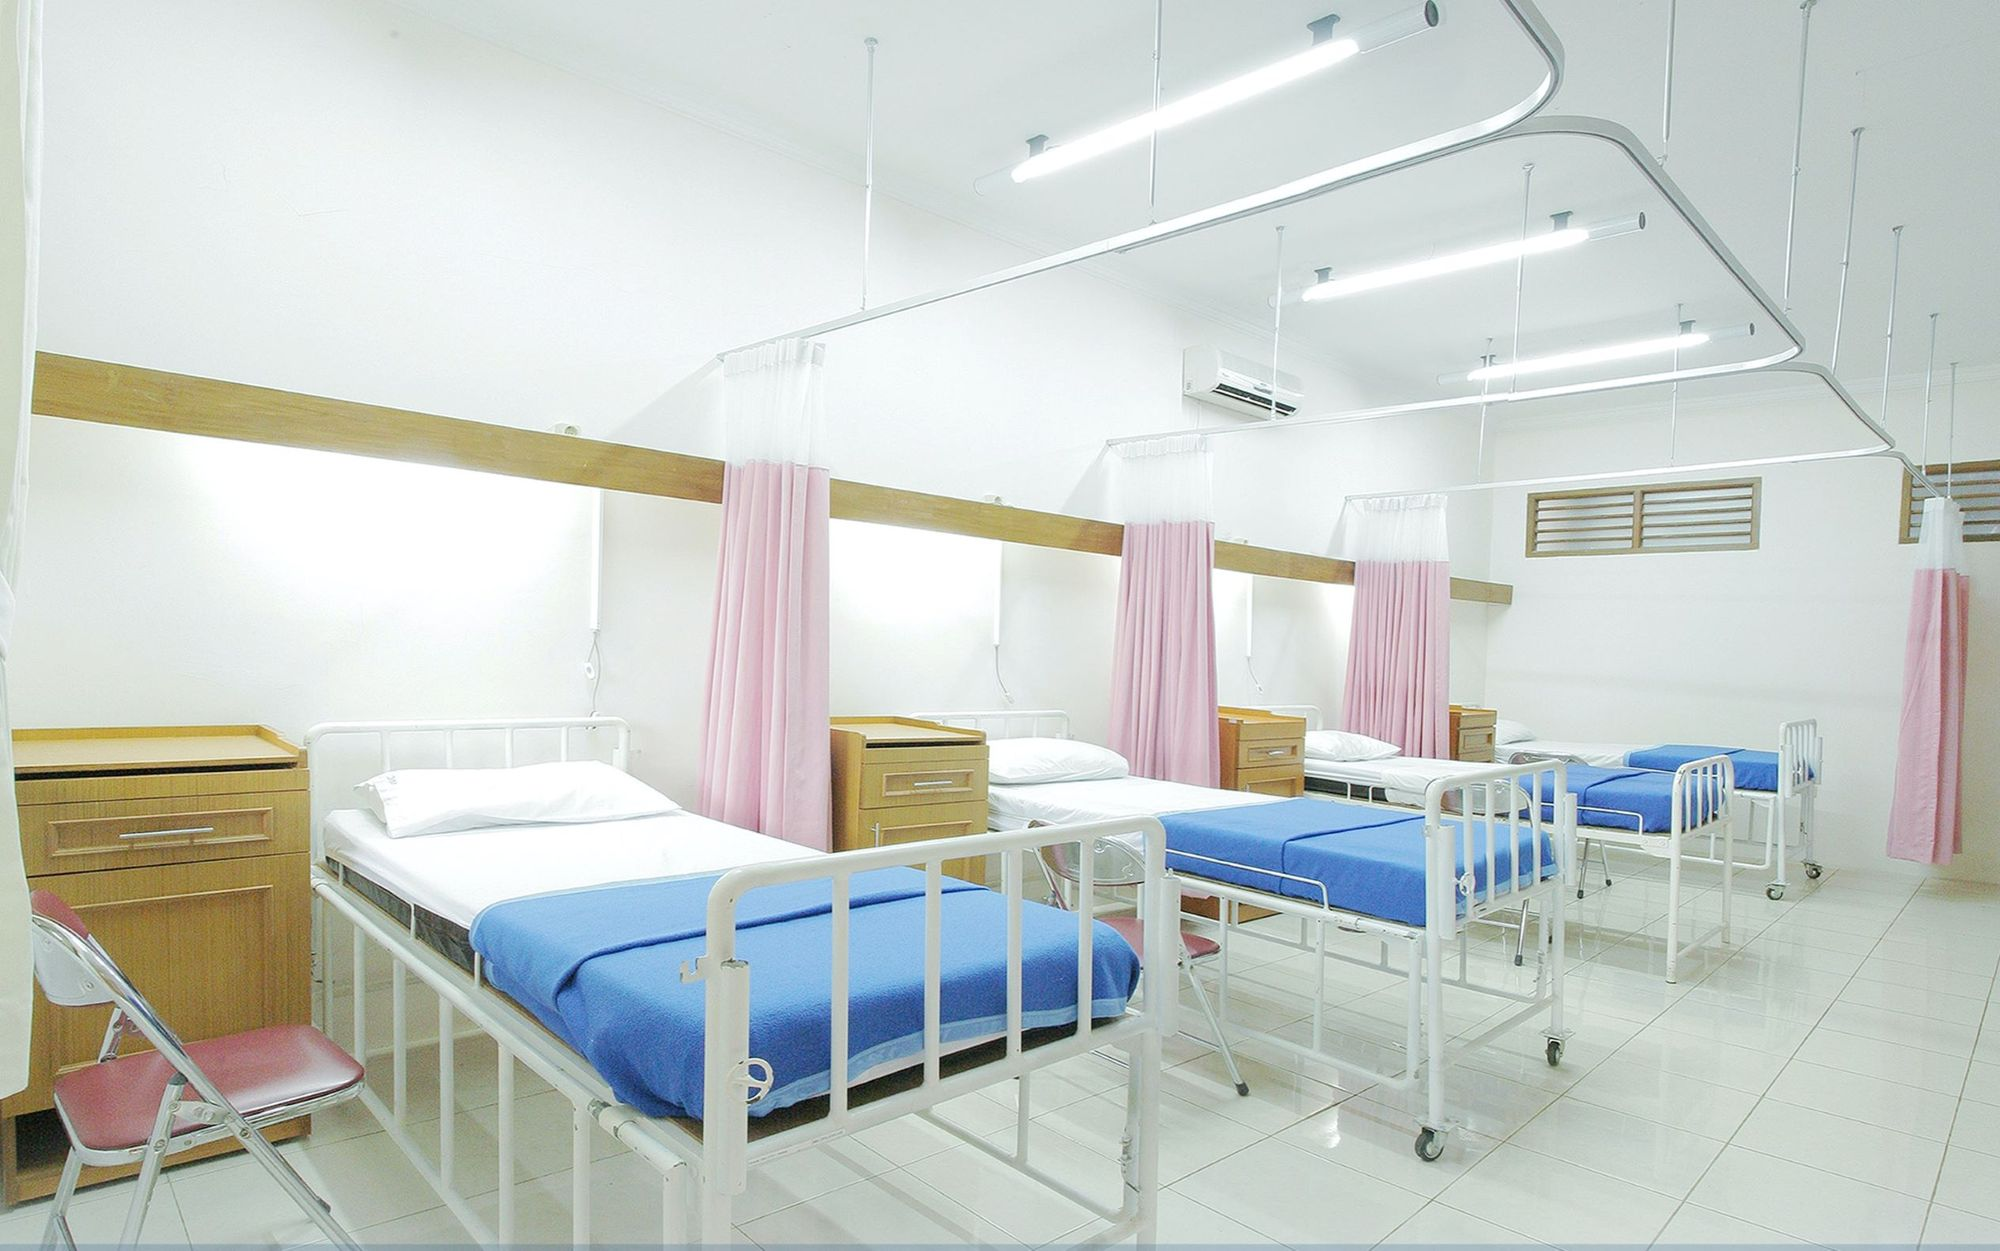 Photo of a hospital bed